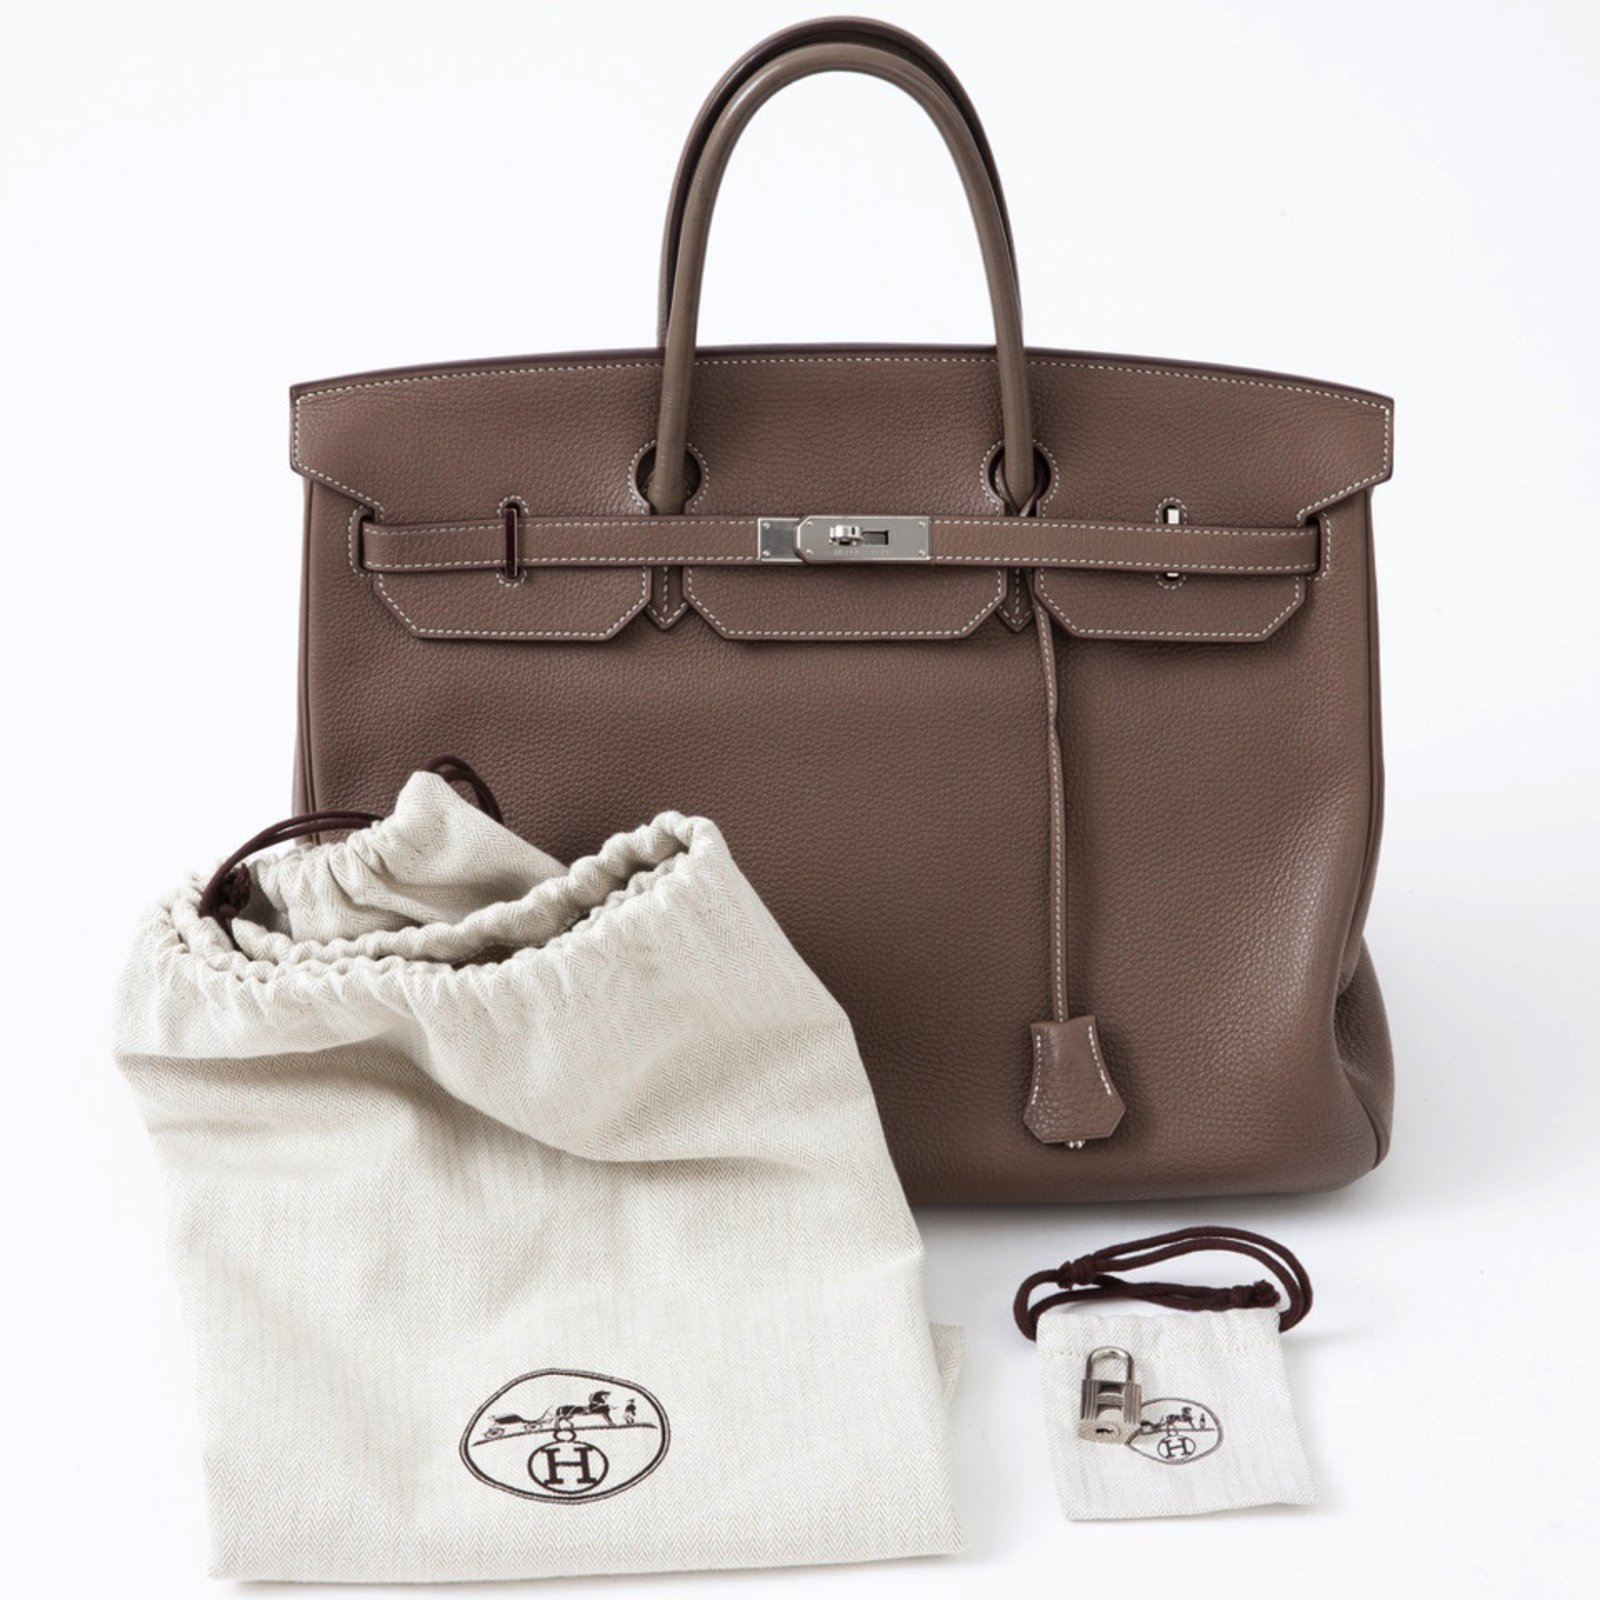 0f370c4f816 Hermès Spacious Hermes Birkin 40 in Togo taupe in very good condition!  Handbags Leather Grey